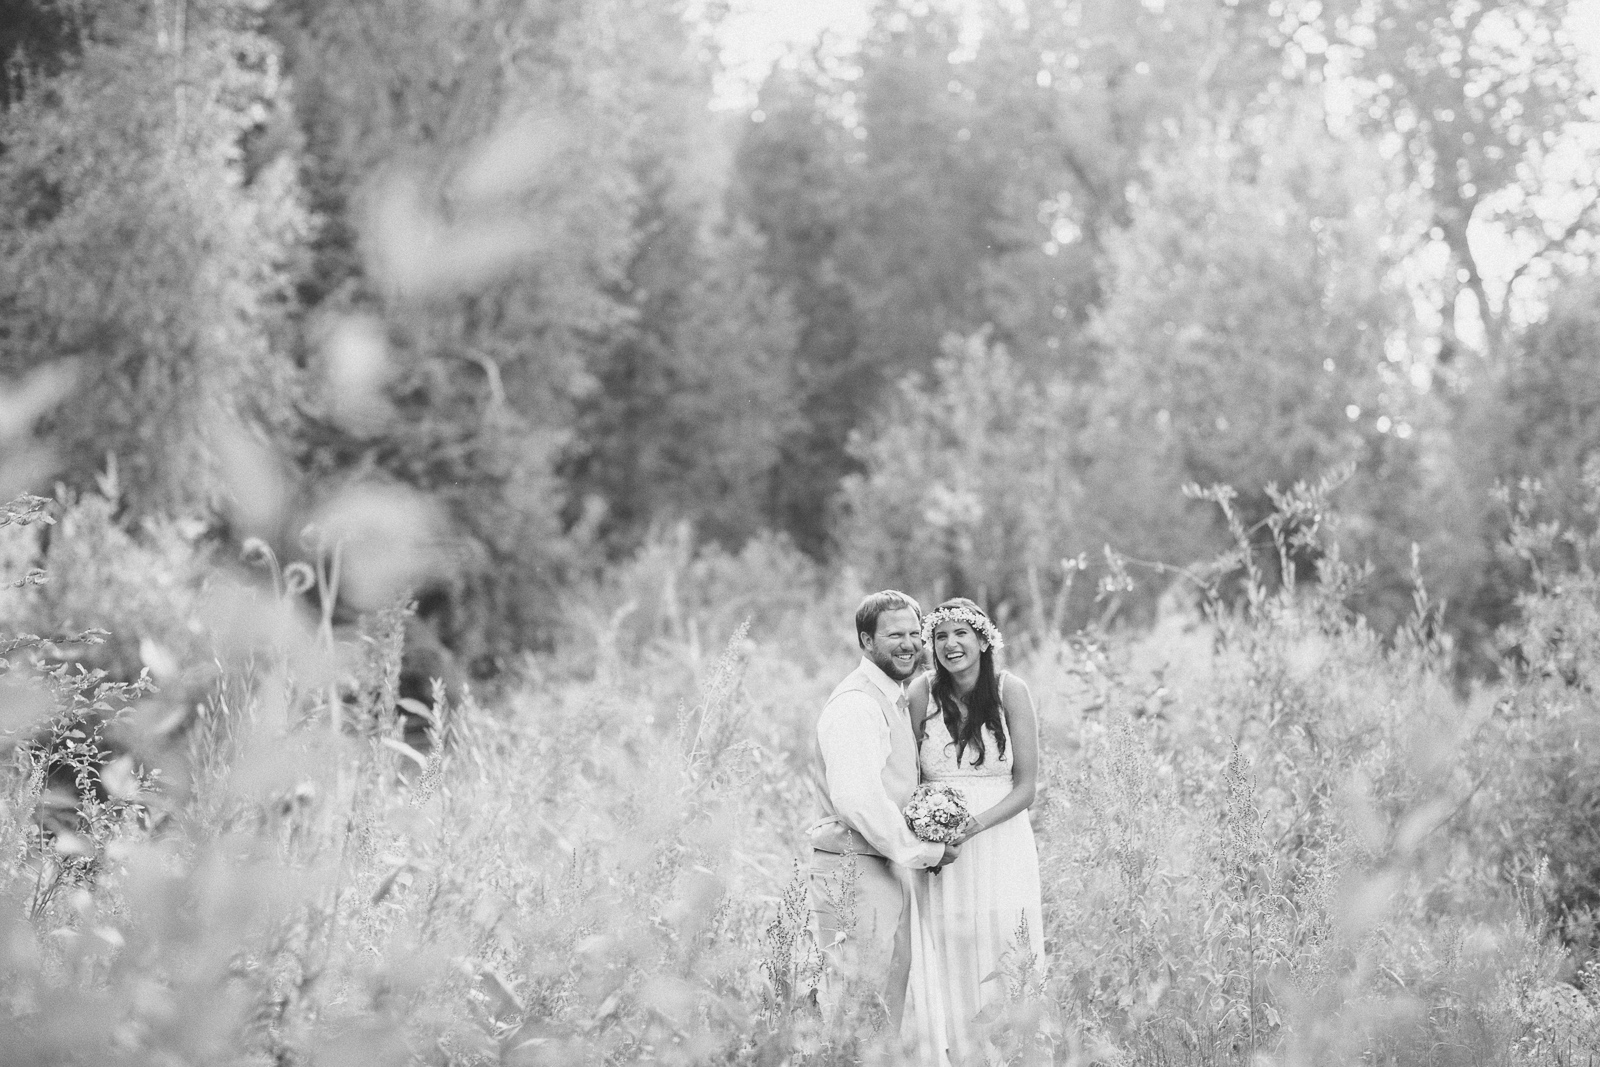 116-wedding-fun-photography-bride-groom-unique-nature-trees